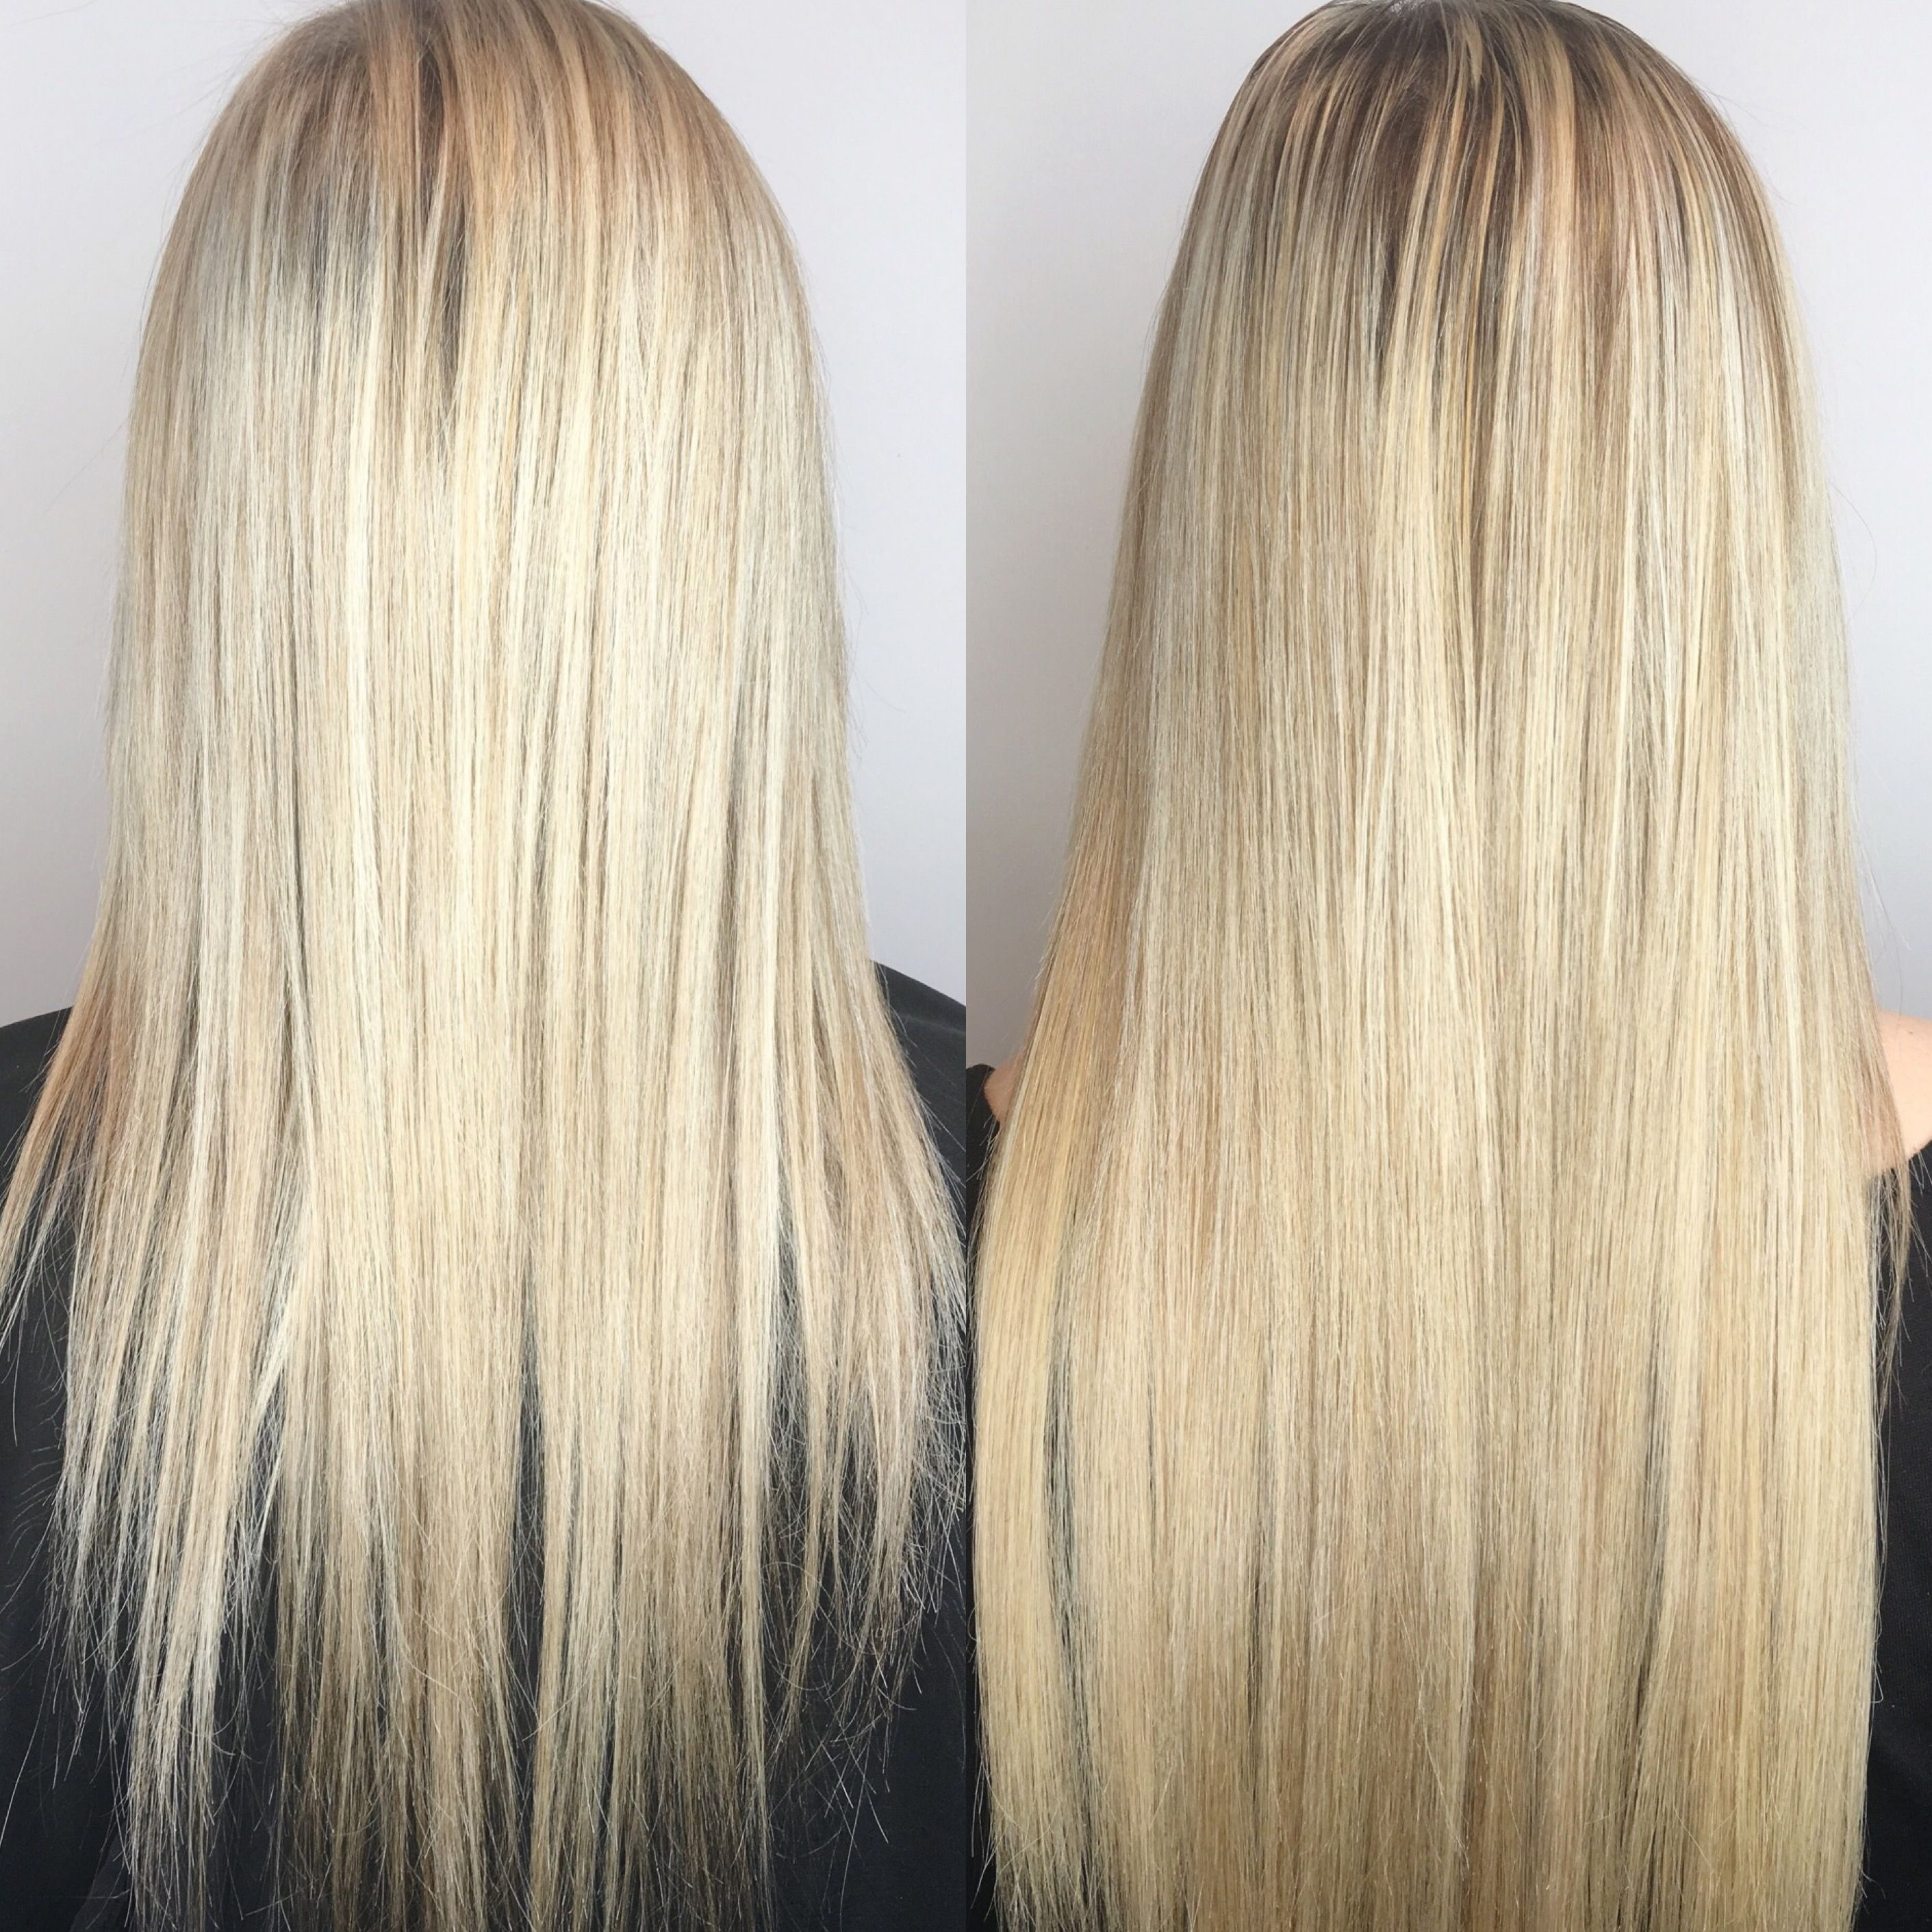 Extensions Vomor Extensions Before And After Extensions Exte Blonde Hair Extensions Before And After Blonde Hair Extensions Hair Extensions Before And After